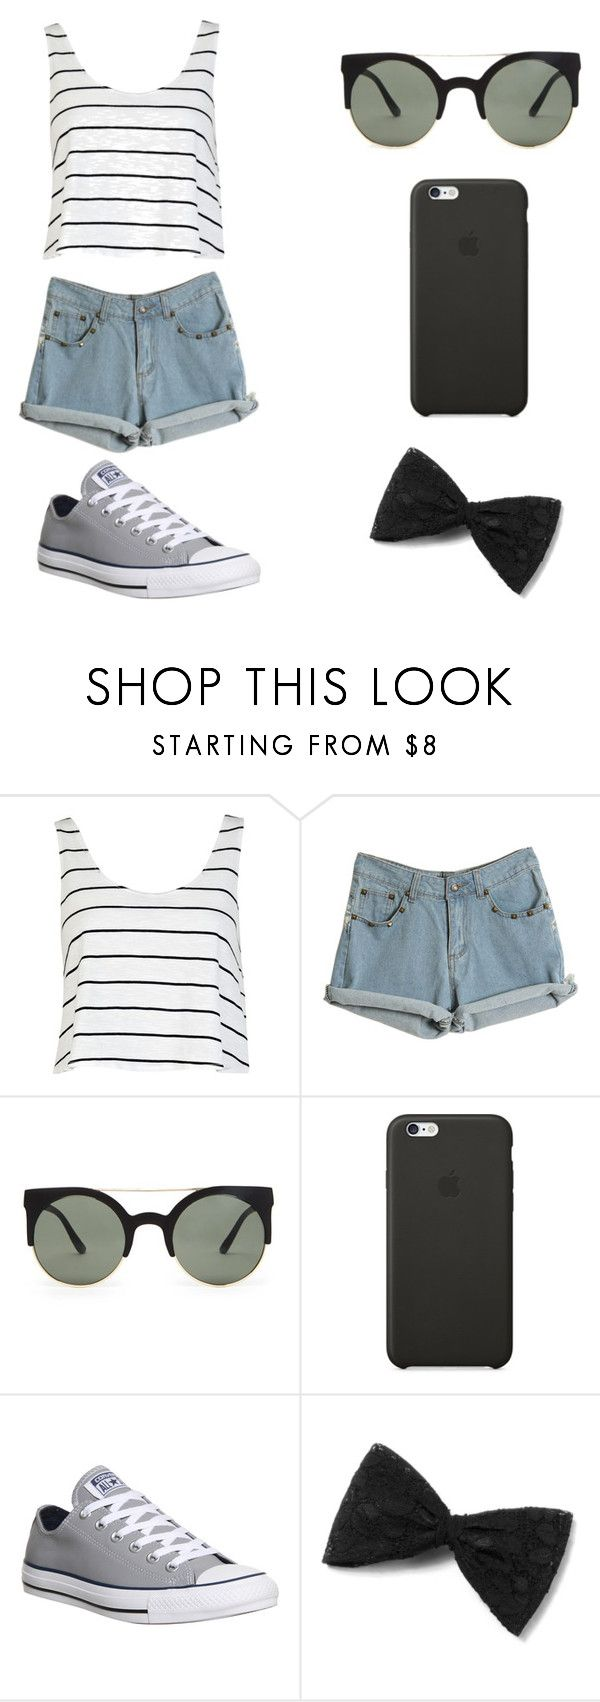 """""""Untitled #73"""" by karenrodriguez-iv on Polyvore featuring River Island, Forever 21, Black Apple, Converse, women's clothing, women, female, woman, misses and juniors"""